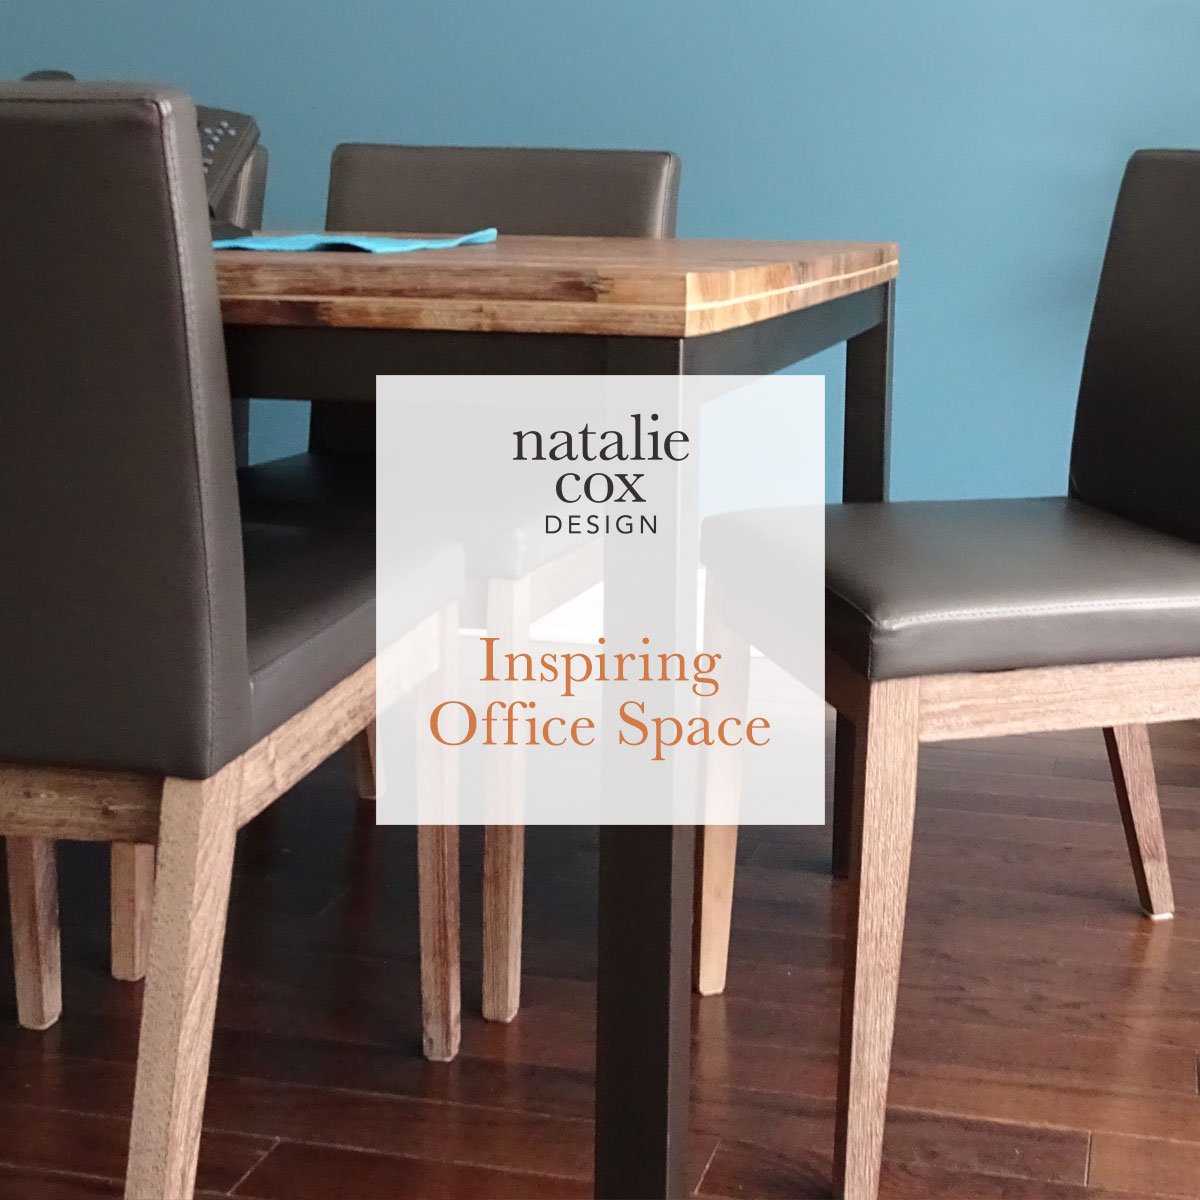 Inspiring Office Space - Natalie Cox Design - Interior Decorator - Ottawa, ON